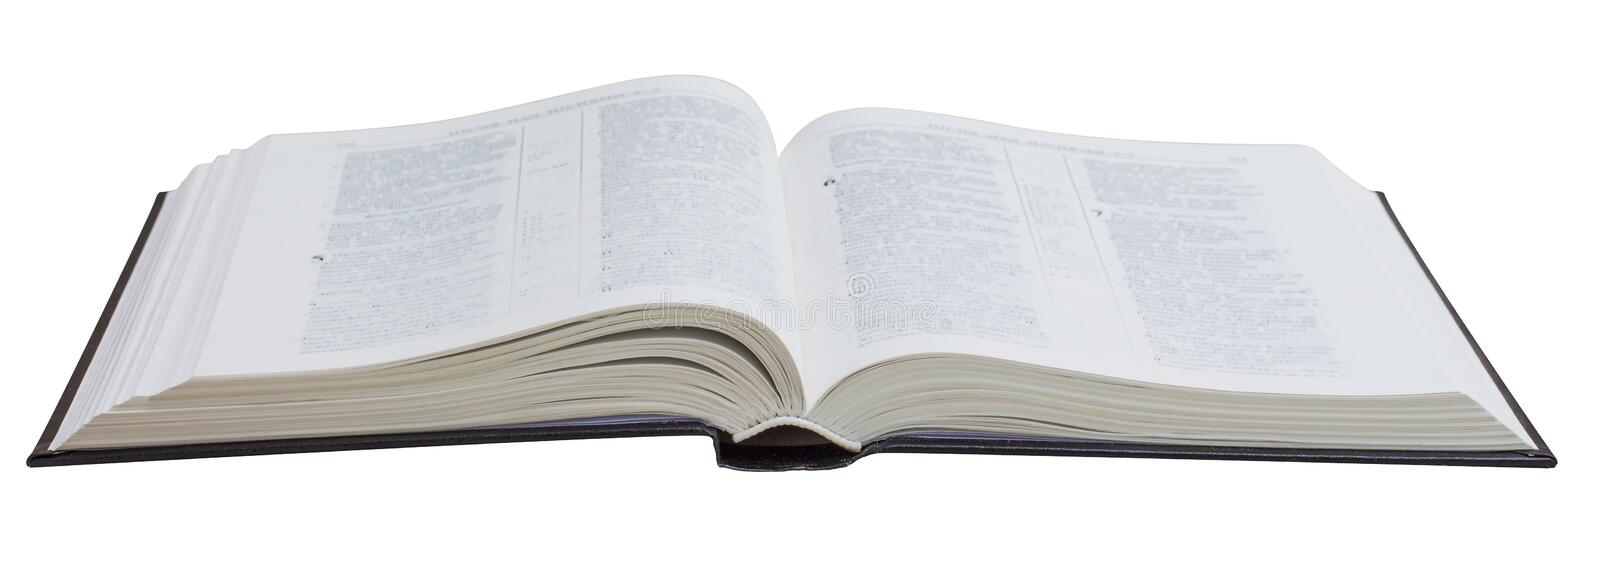 Open book, Bible, on a white isolated background_ royalty free stock photography